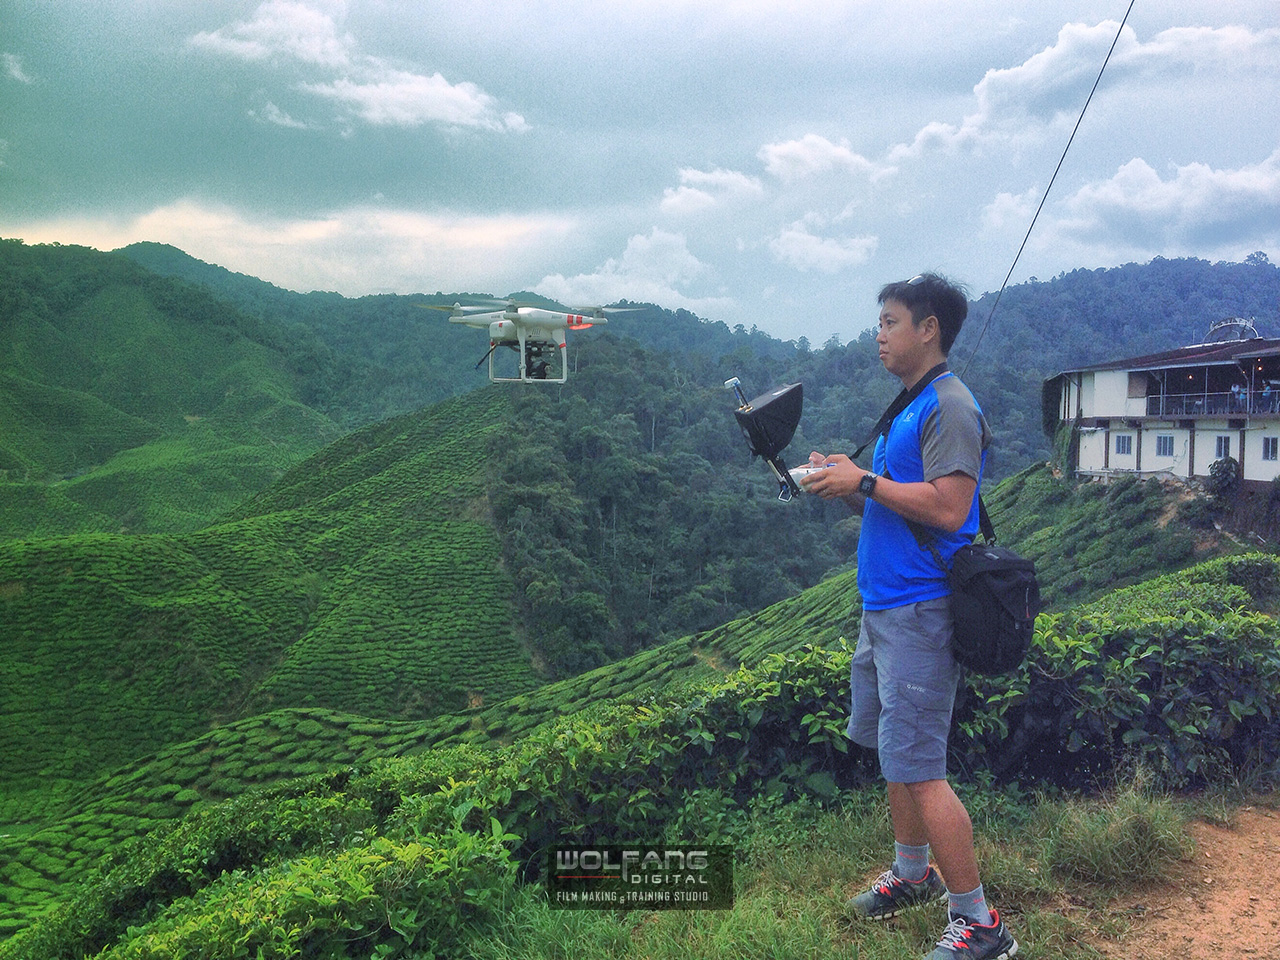 Over 600 Km in a single day to film the tea plantations for Dutch reality game show 'Peking Express'